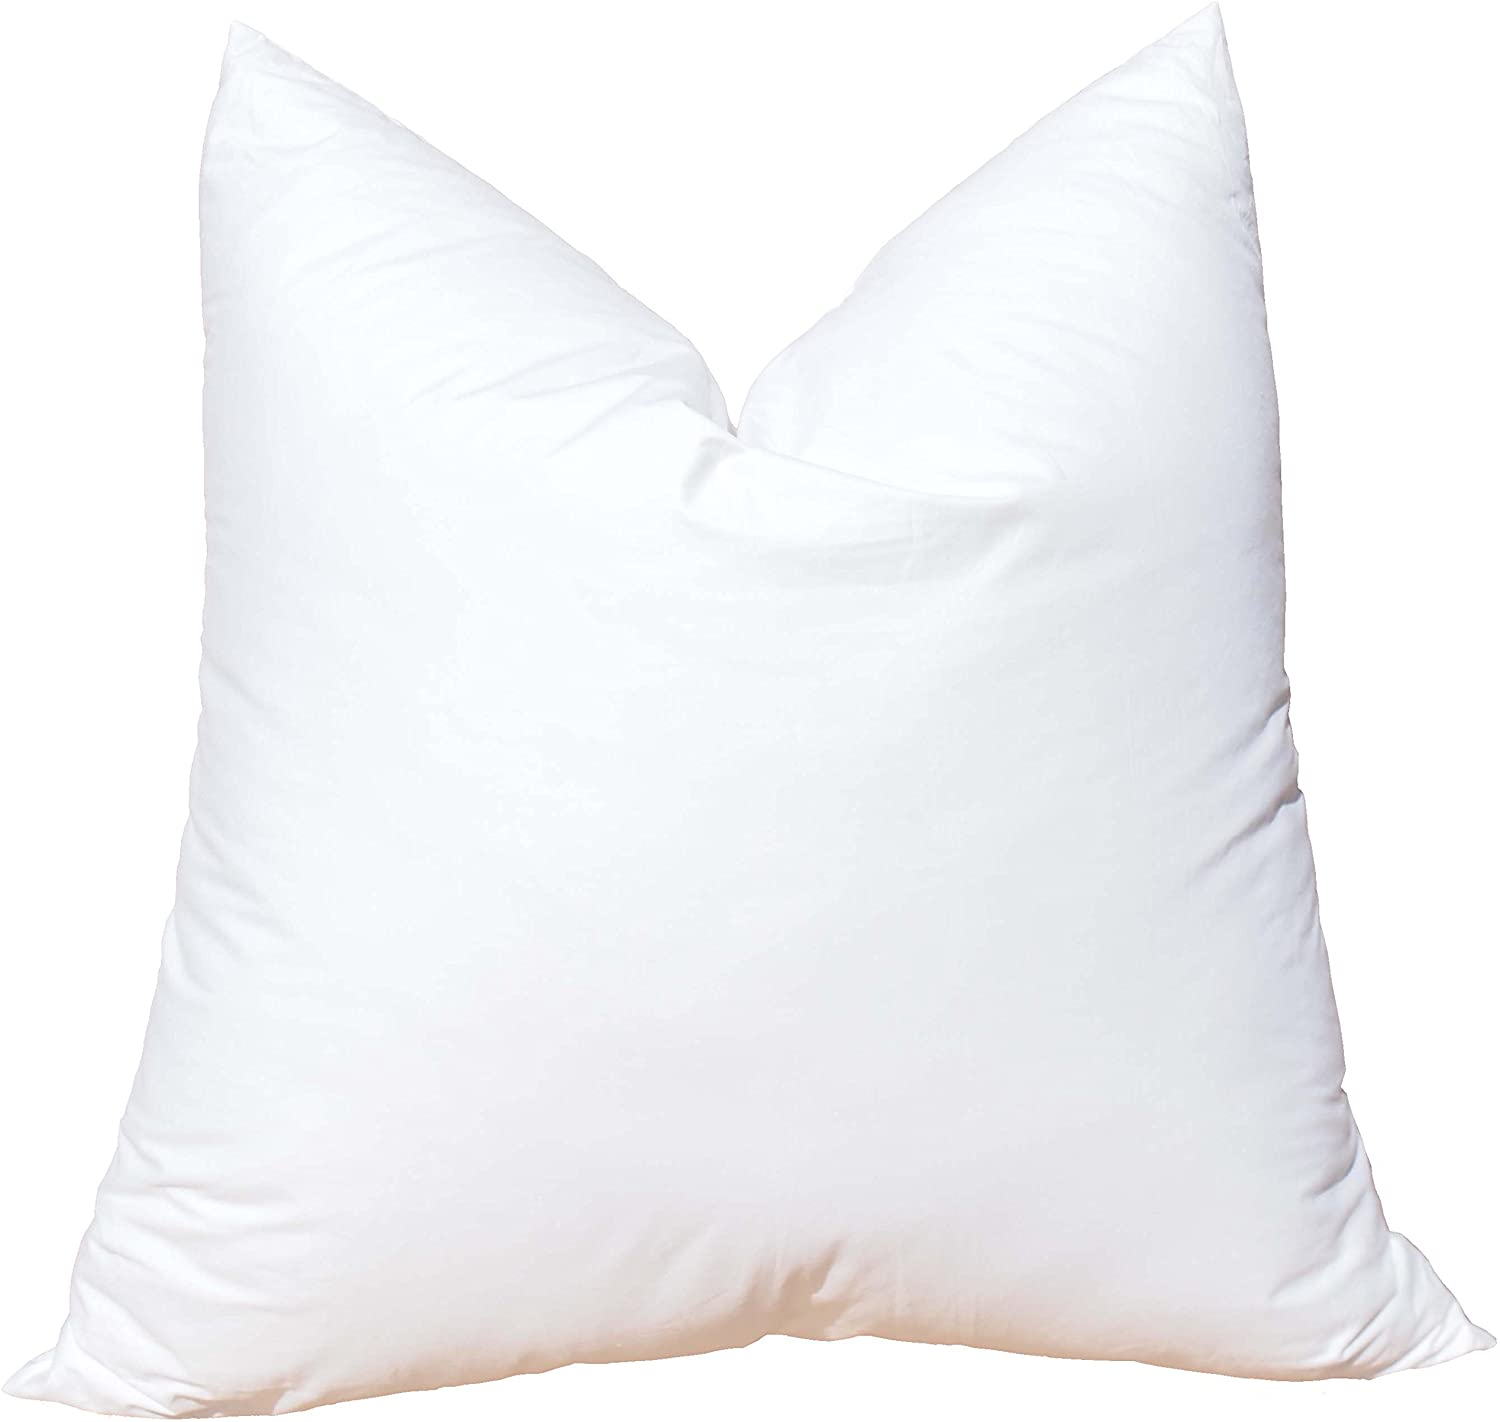 Pillowflex Synthetic Down Pillow Insert for Sham Aka Faux/Alternative (20 Inch by 20 Inch)